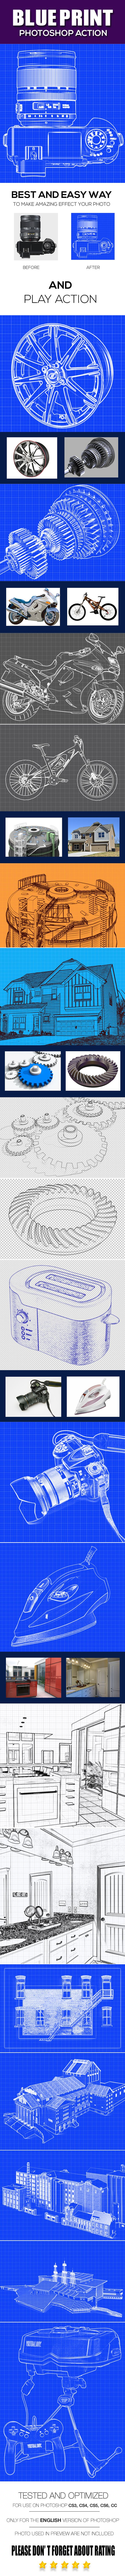 Blueprint Photoshop Action - #Photo Effects #Actions Download here: https://graphicriver.net/item/blueprint-photoshop-action/20041876?ref=alena994